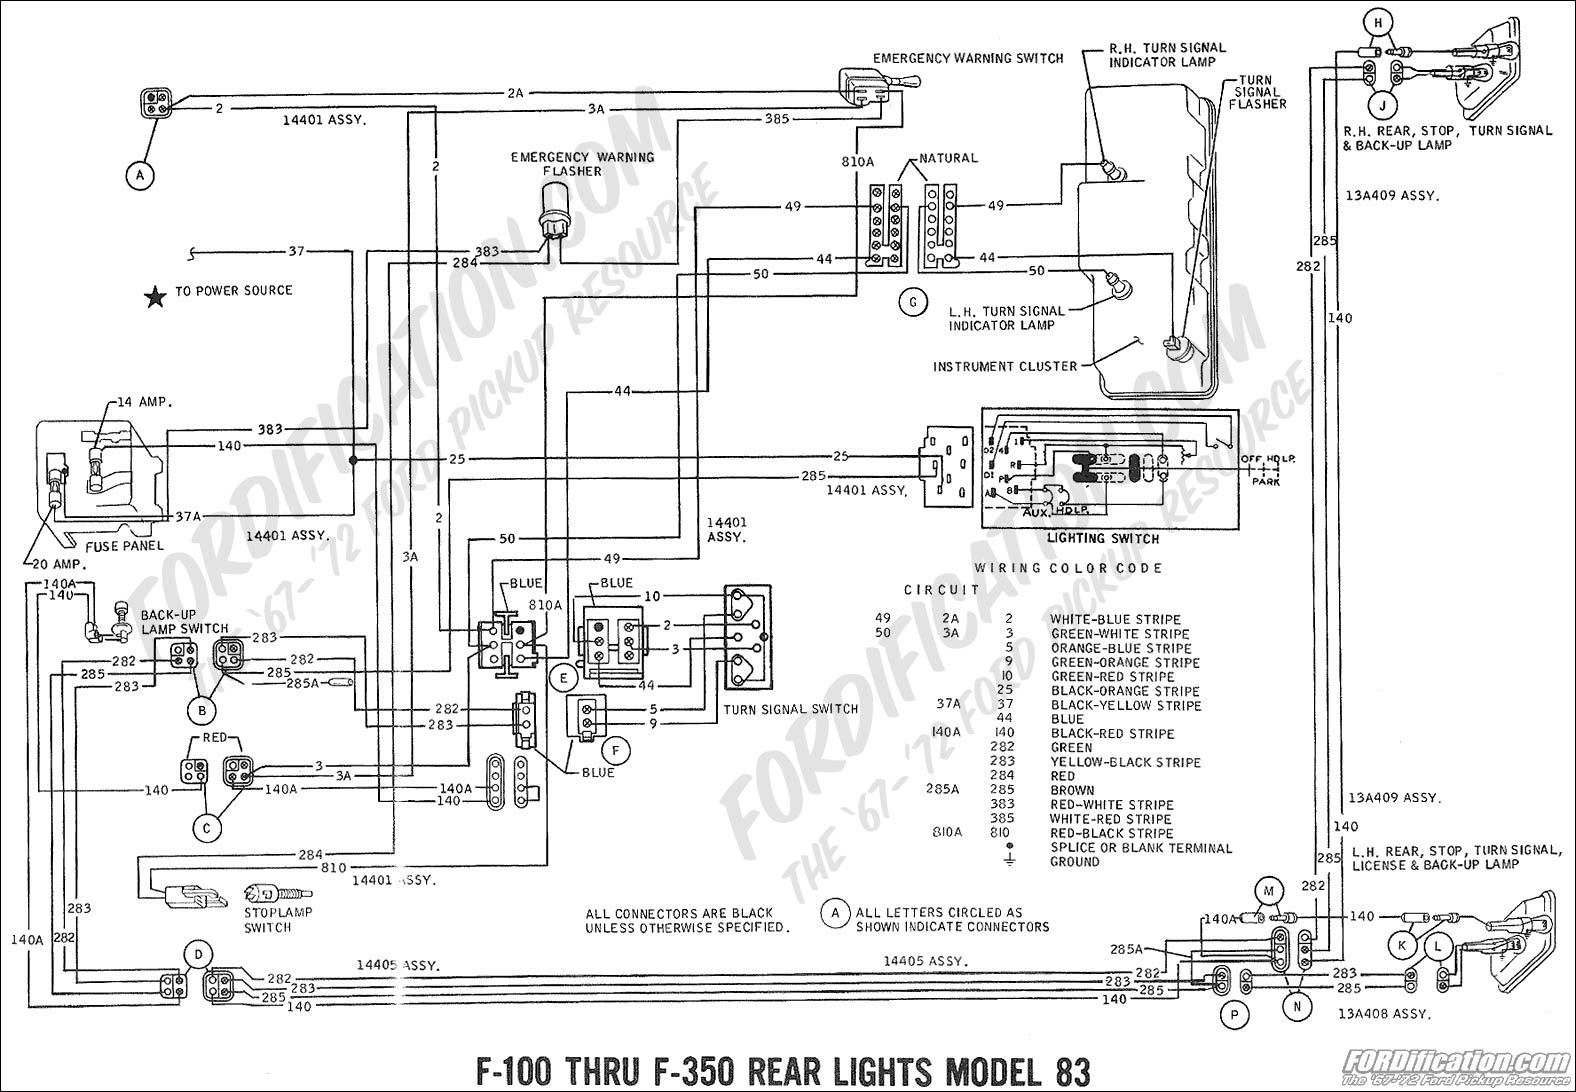 1966 F 100 Turn Signal Wiring Diagram 1966 F-100 Parts